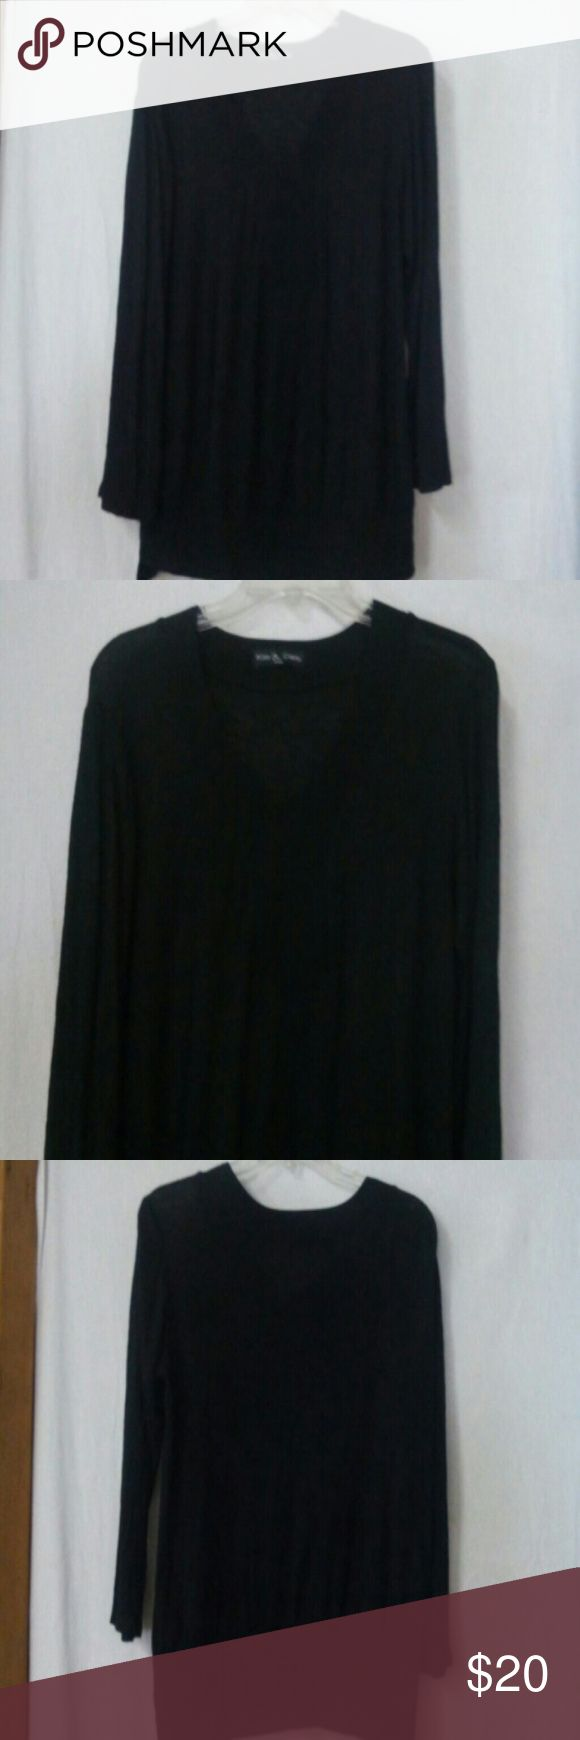 "Kim and cami women size small shirt Barely worn, black, burnout, 3/4 sleeve, burnout, v neck, polyester, chest 42"", length 25 kim & cami Tops"